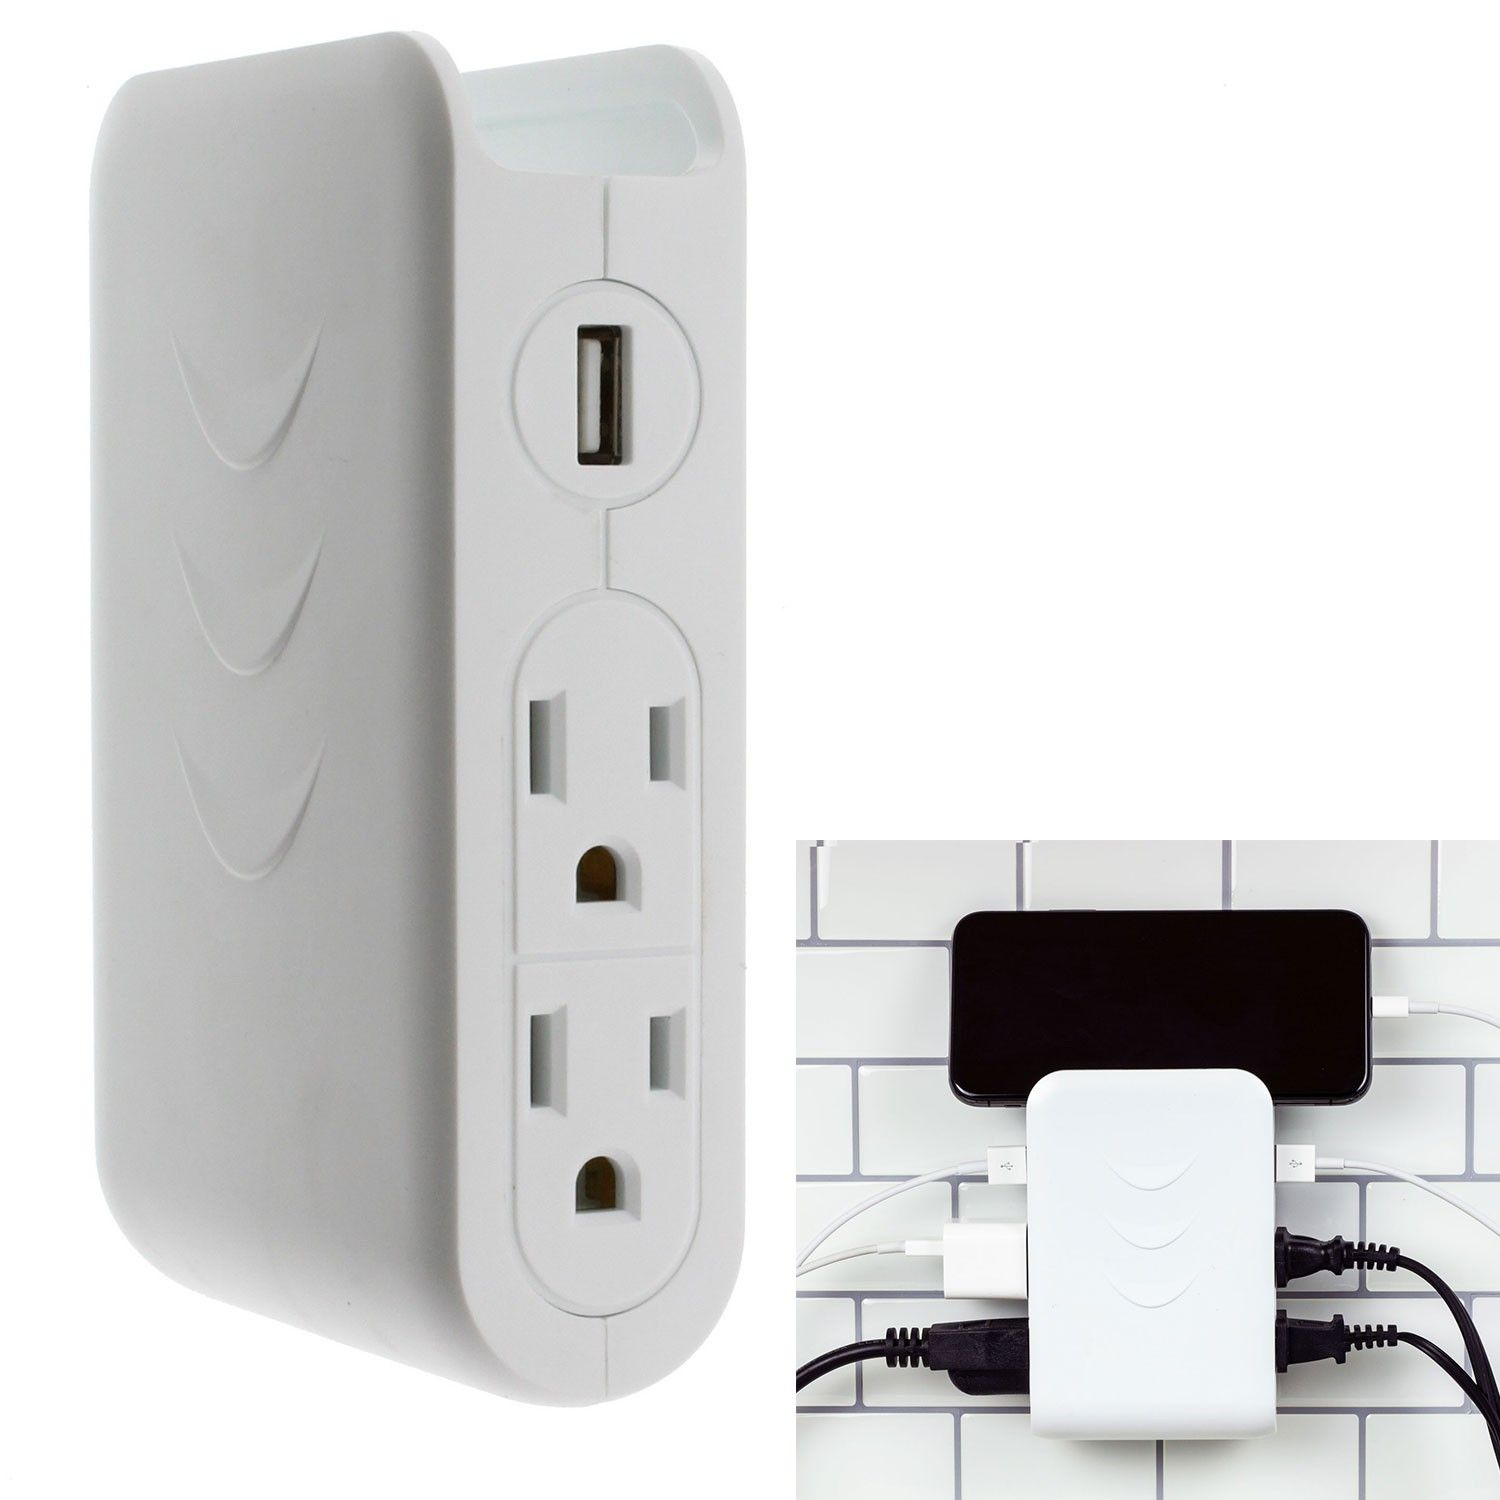 Brightway White 4 Outlet 2 Usb Surge Protector Side Mount Wall Tap Discontinued No Longer Available Wall Taps Surge Protector Protector